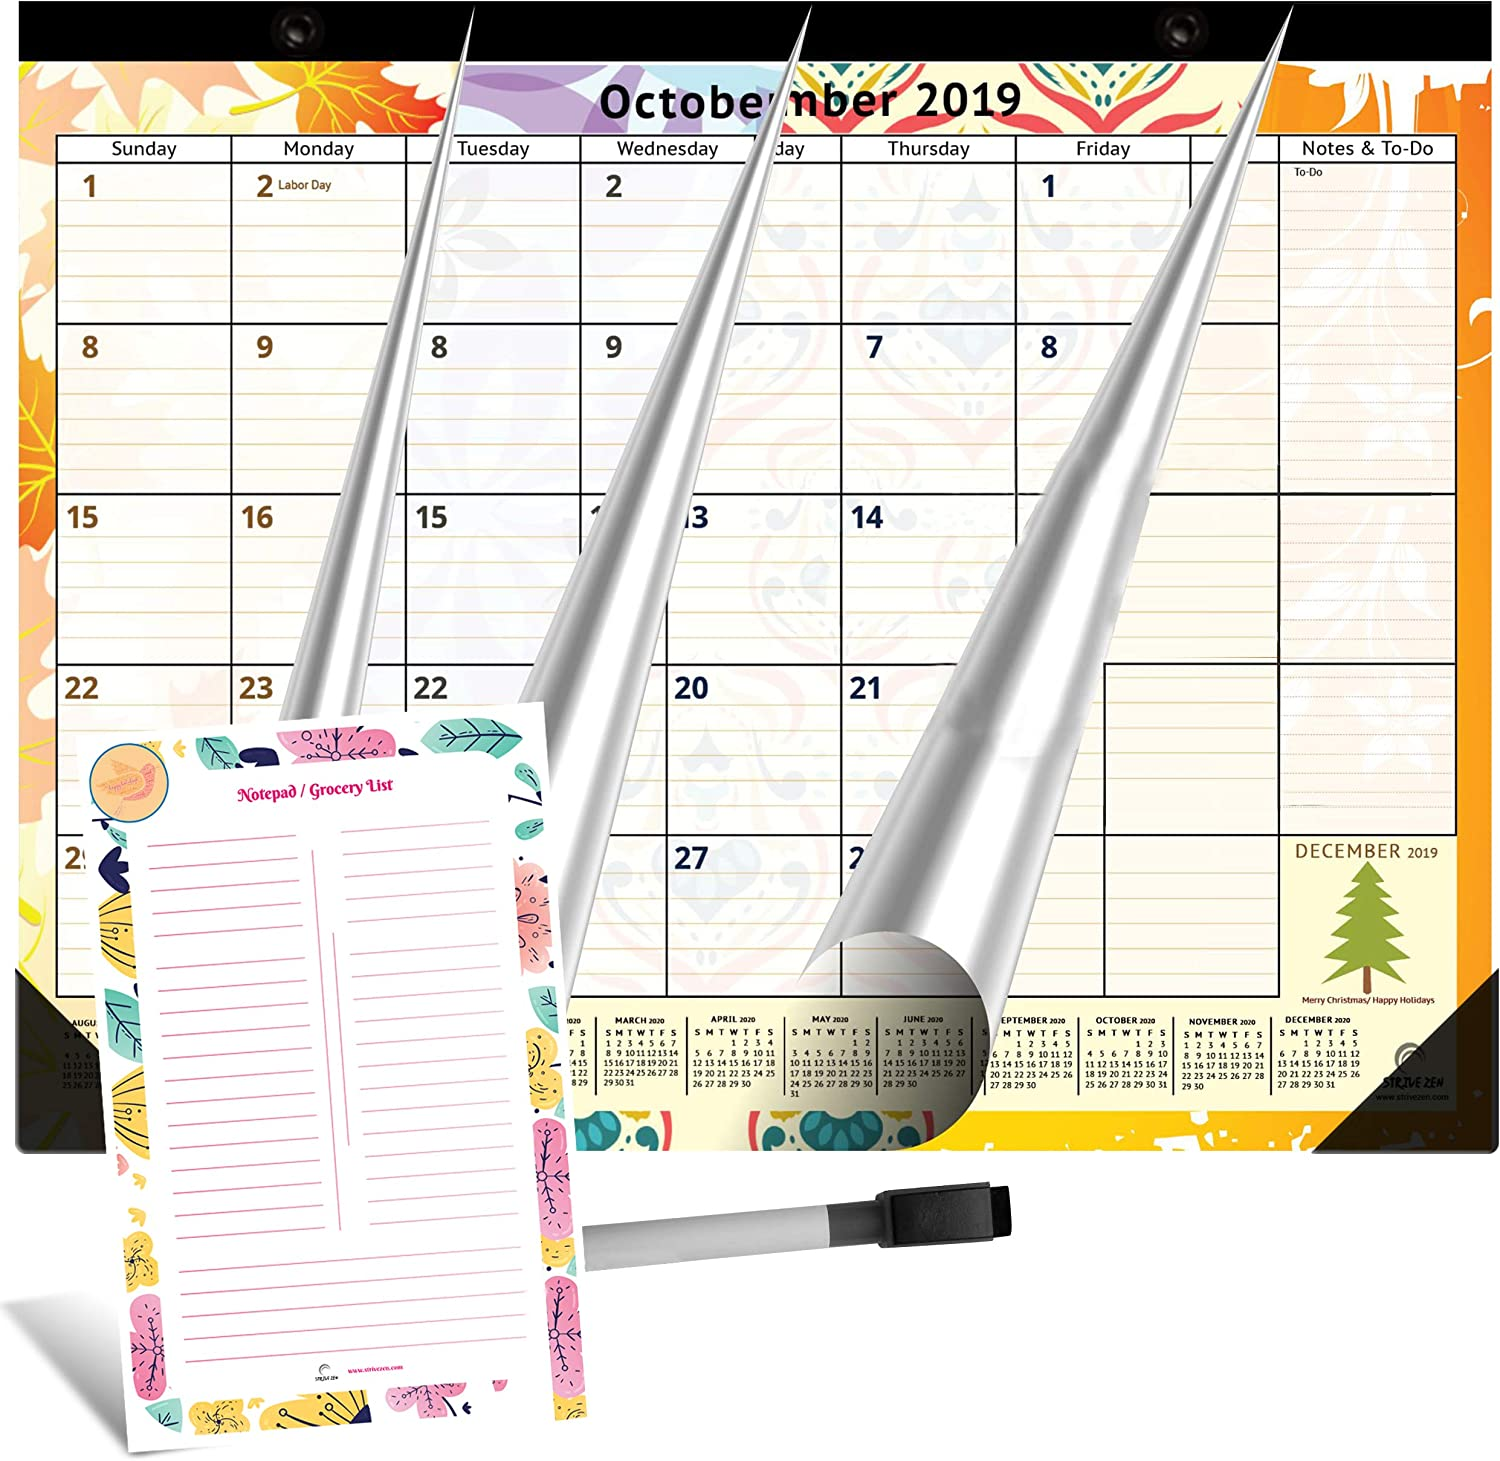 Large Magnetic Calendar 2020 for Fridge by StriveZen, 16x12 inches, Big Monthly Pages Sep 2019- Dec 2020, Bonus Dry Erase Notepad/Grocery List and Dry Erase Marker